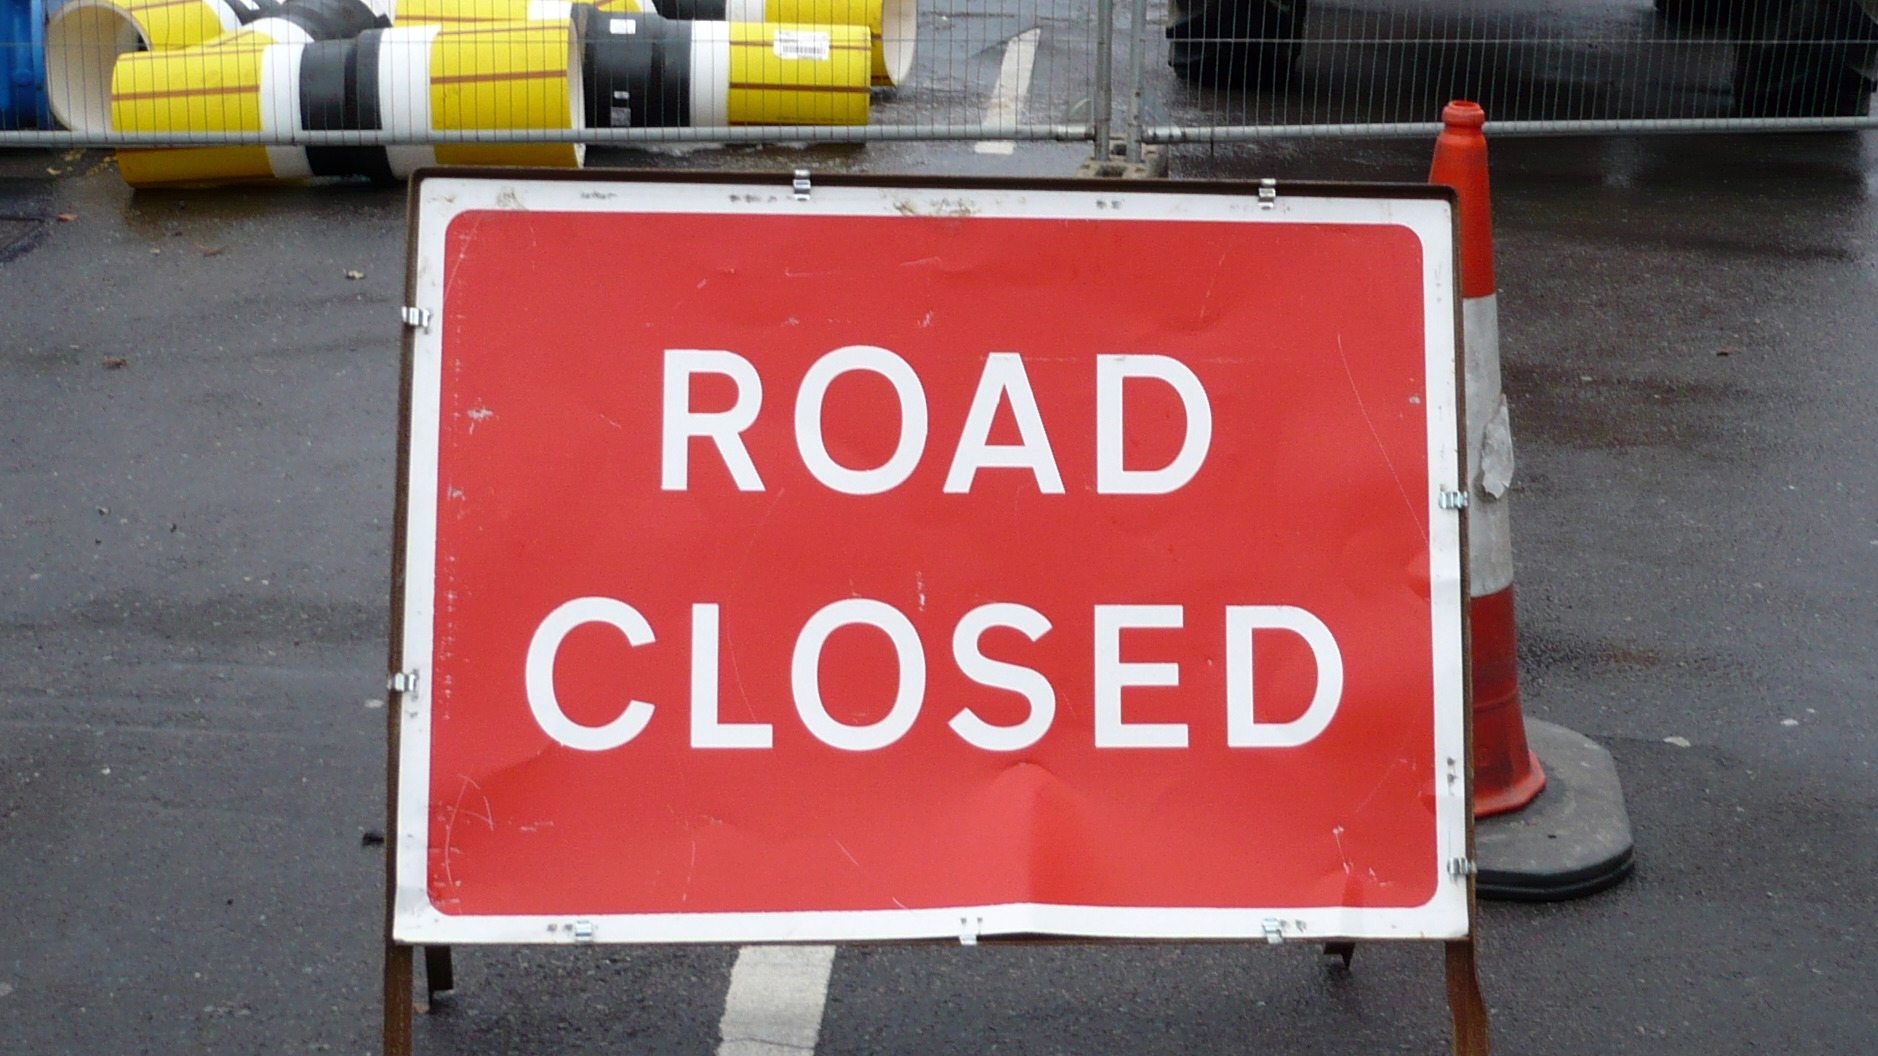 Road to be closed for two weeks